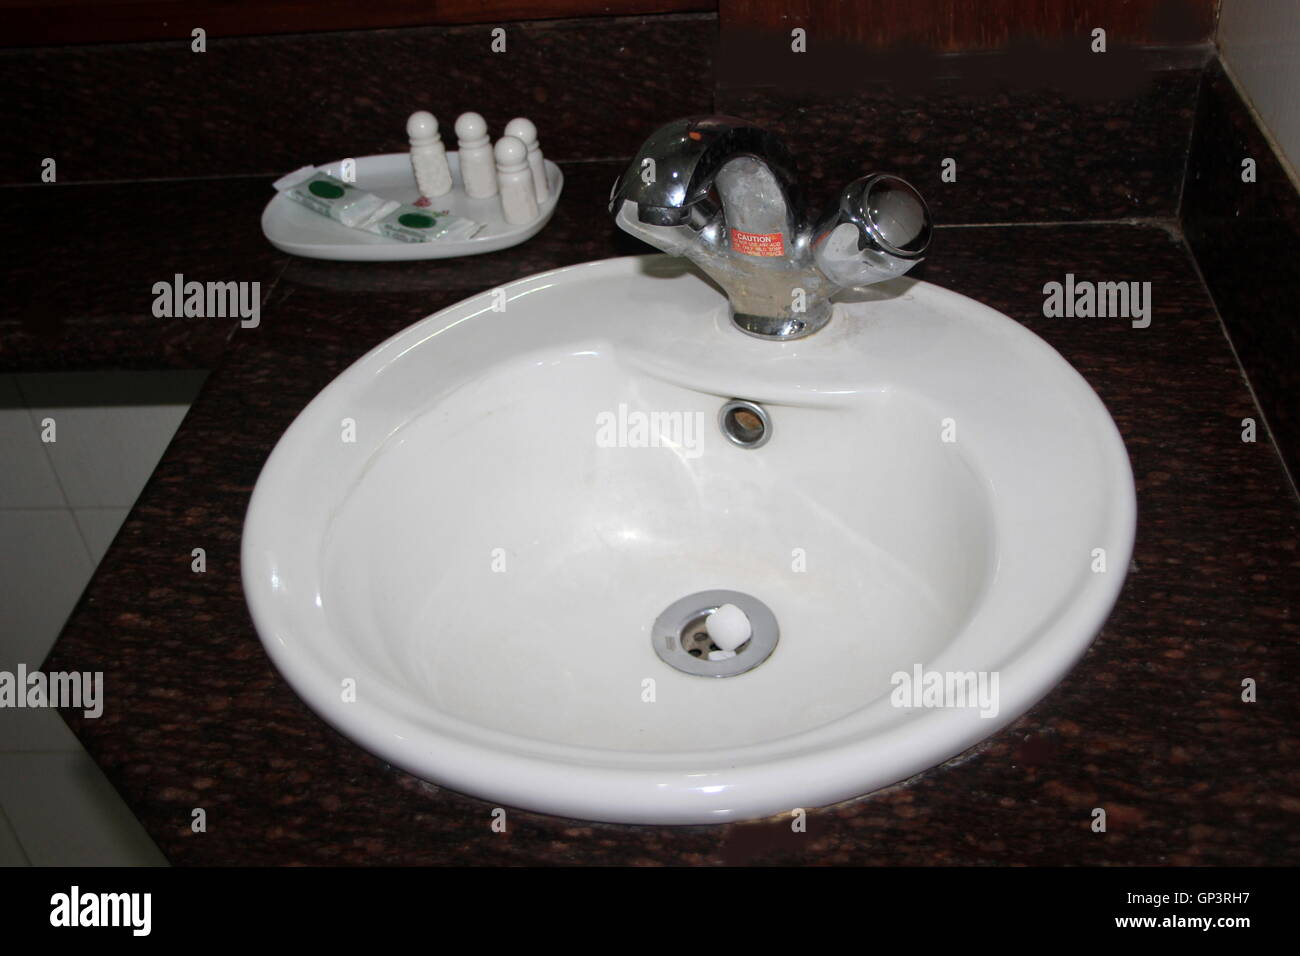 wash hand basin stock photos wash hand basin stock images alamy. Black Bedroom Furniture Sets. Home Design Ideas